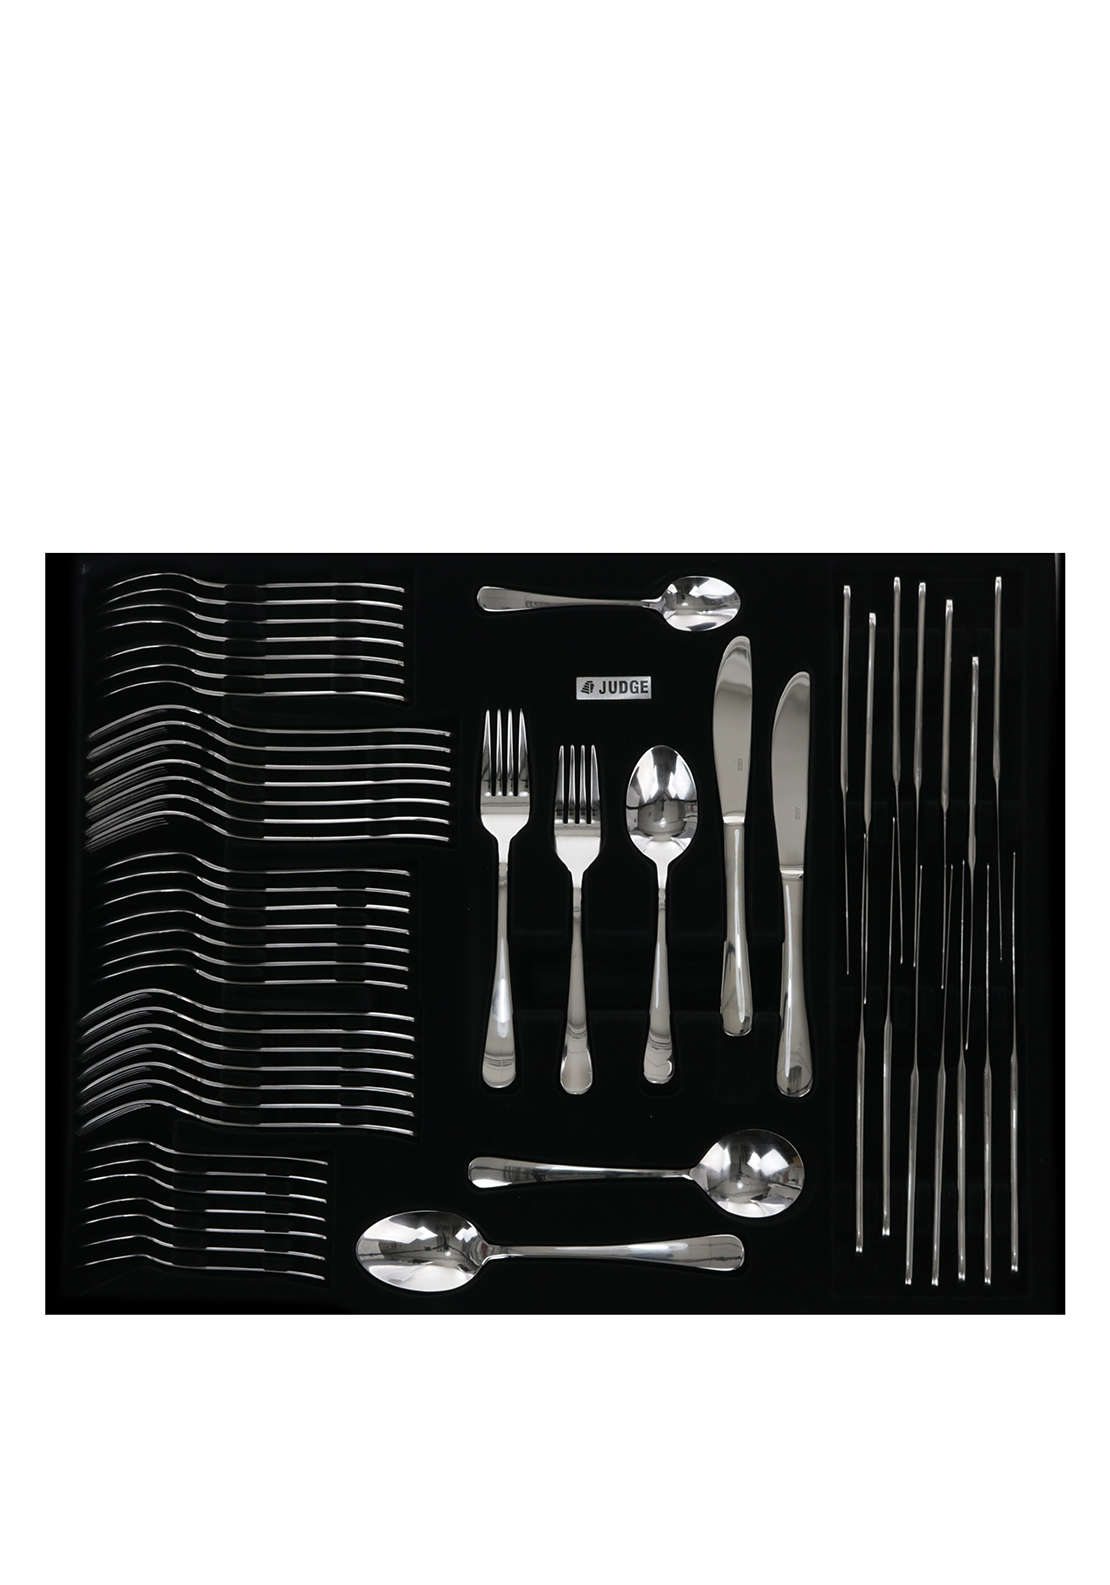 Judge Windsor 58 Piece Stainless Steel Cutlery Set